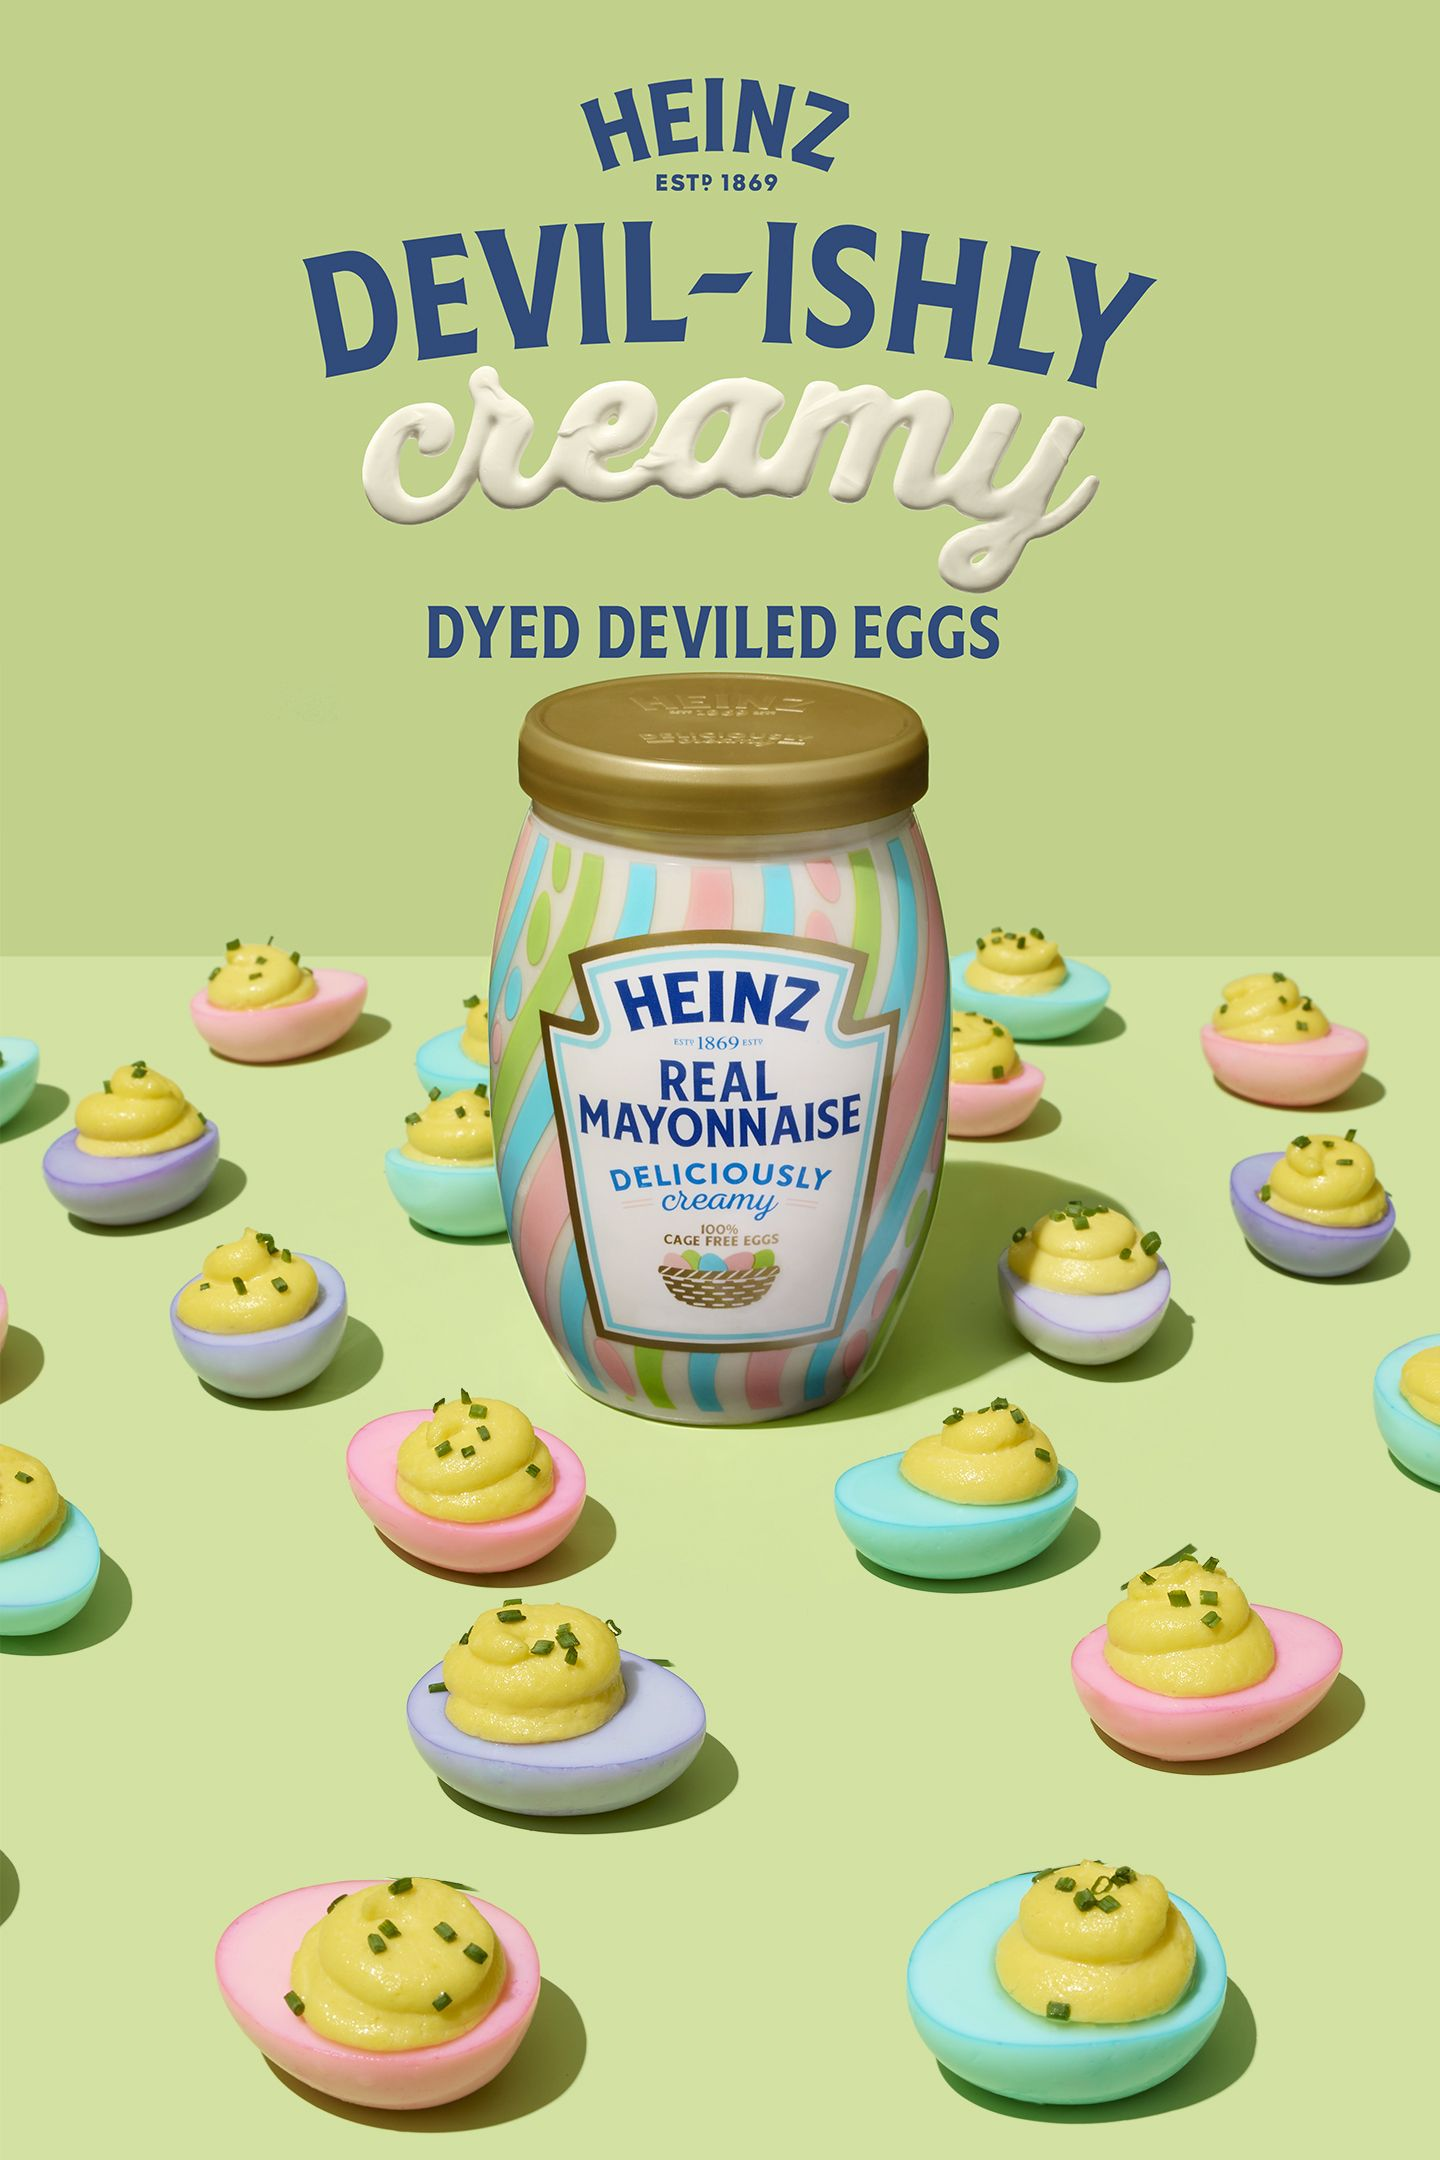 Snag your Limited Edition Heinz Deliciously Creamy Mayonnaise and show off your springtime colors with Devilishly Creamy Dyed Deviled Eggs! This new, limited edition jar is the secret ingredient making all your Easter recipes a little bit more deliciously creamy  It's the same mayonnaise you love, but available in a special jar that's perfect for springtime  is part of Dyed deviled eggs -